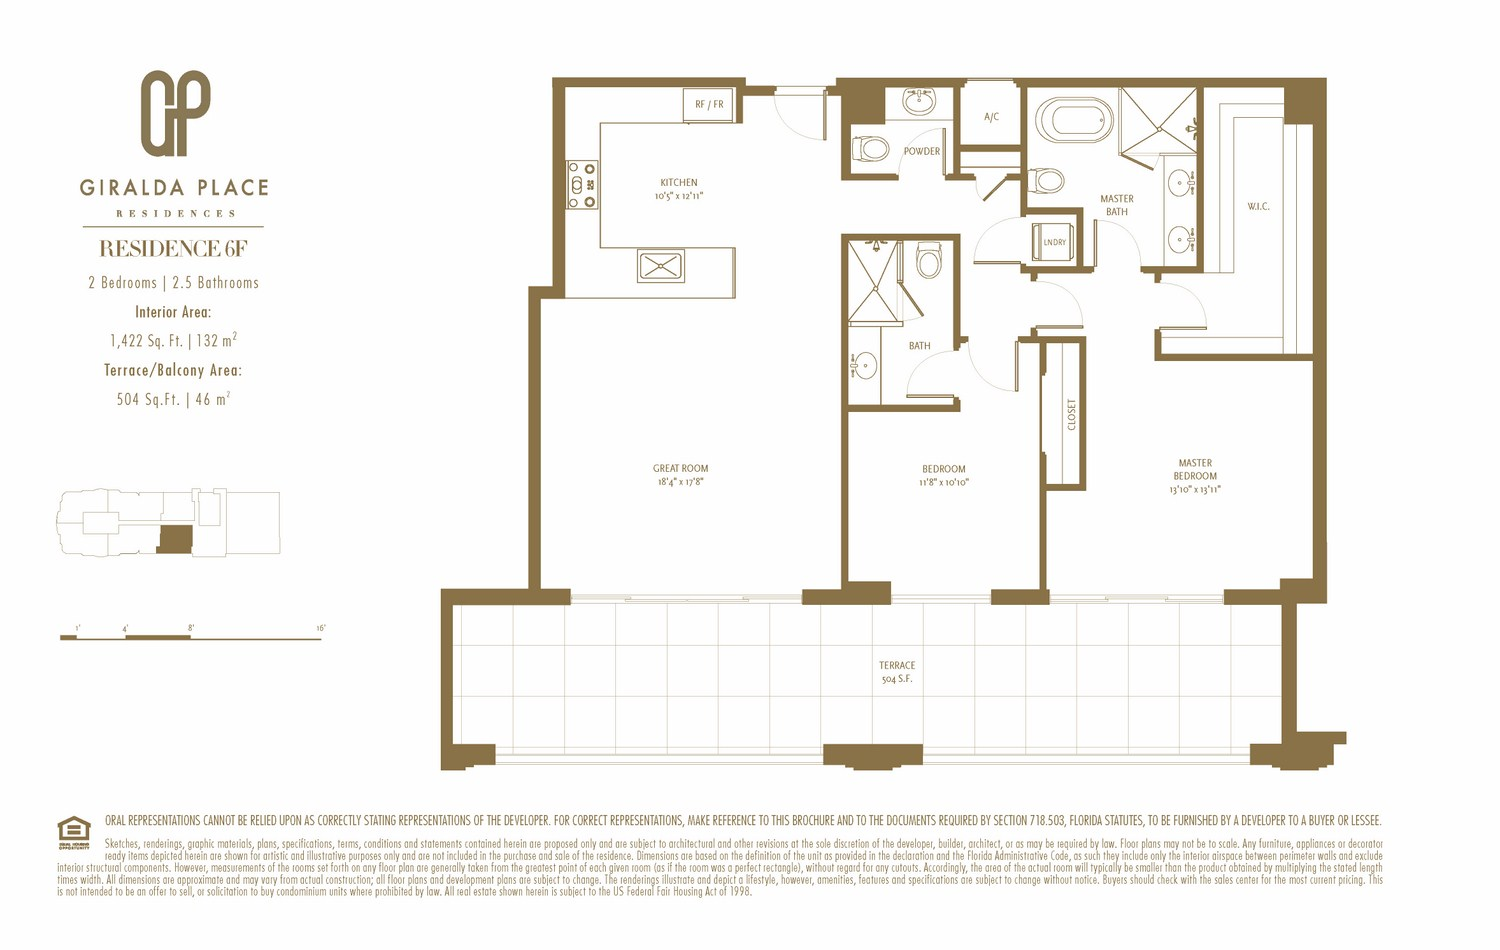 Giralda Place - Floorplan 6